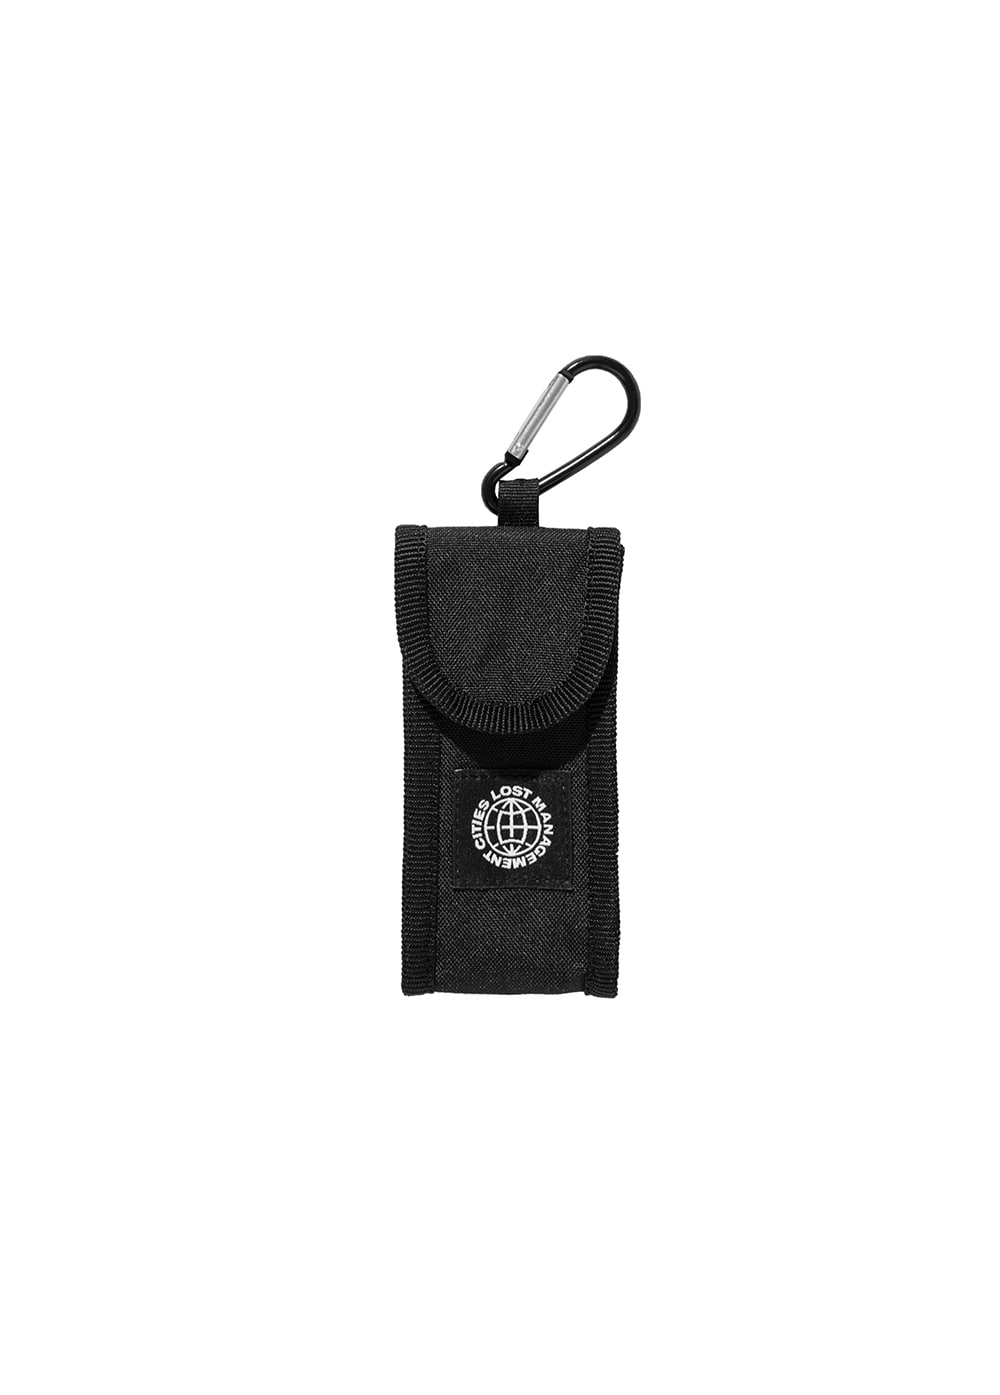 LMC MINI POUCH black